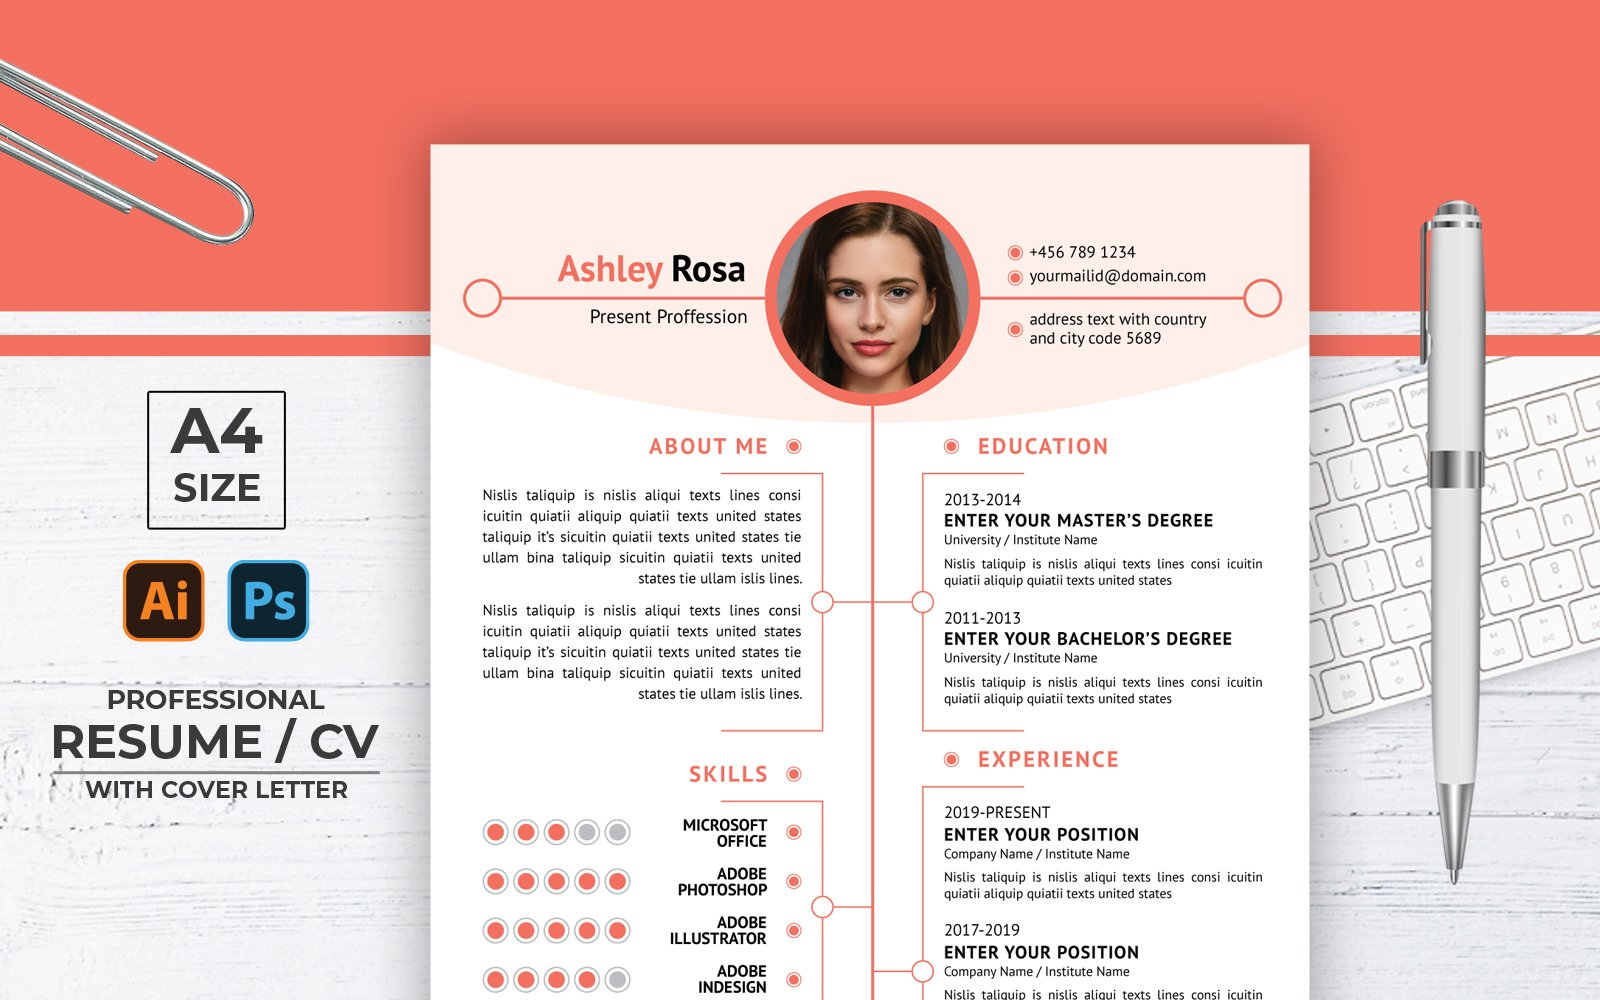 Ashley Rosa Creative CV Önéletrajz sablon 123162